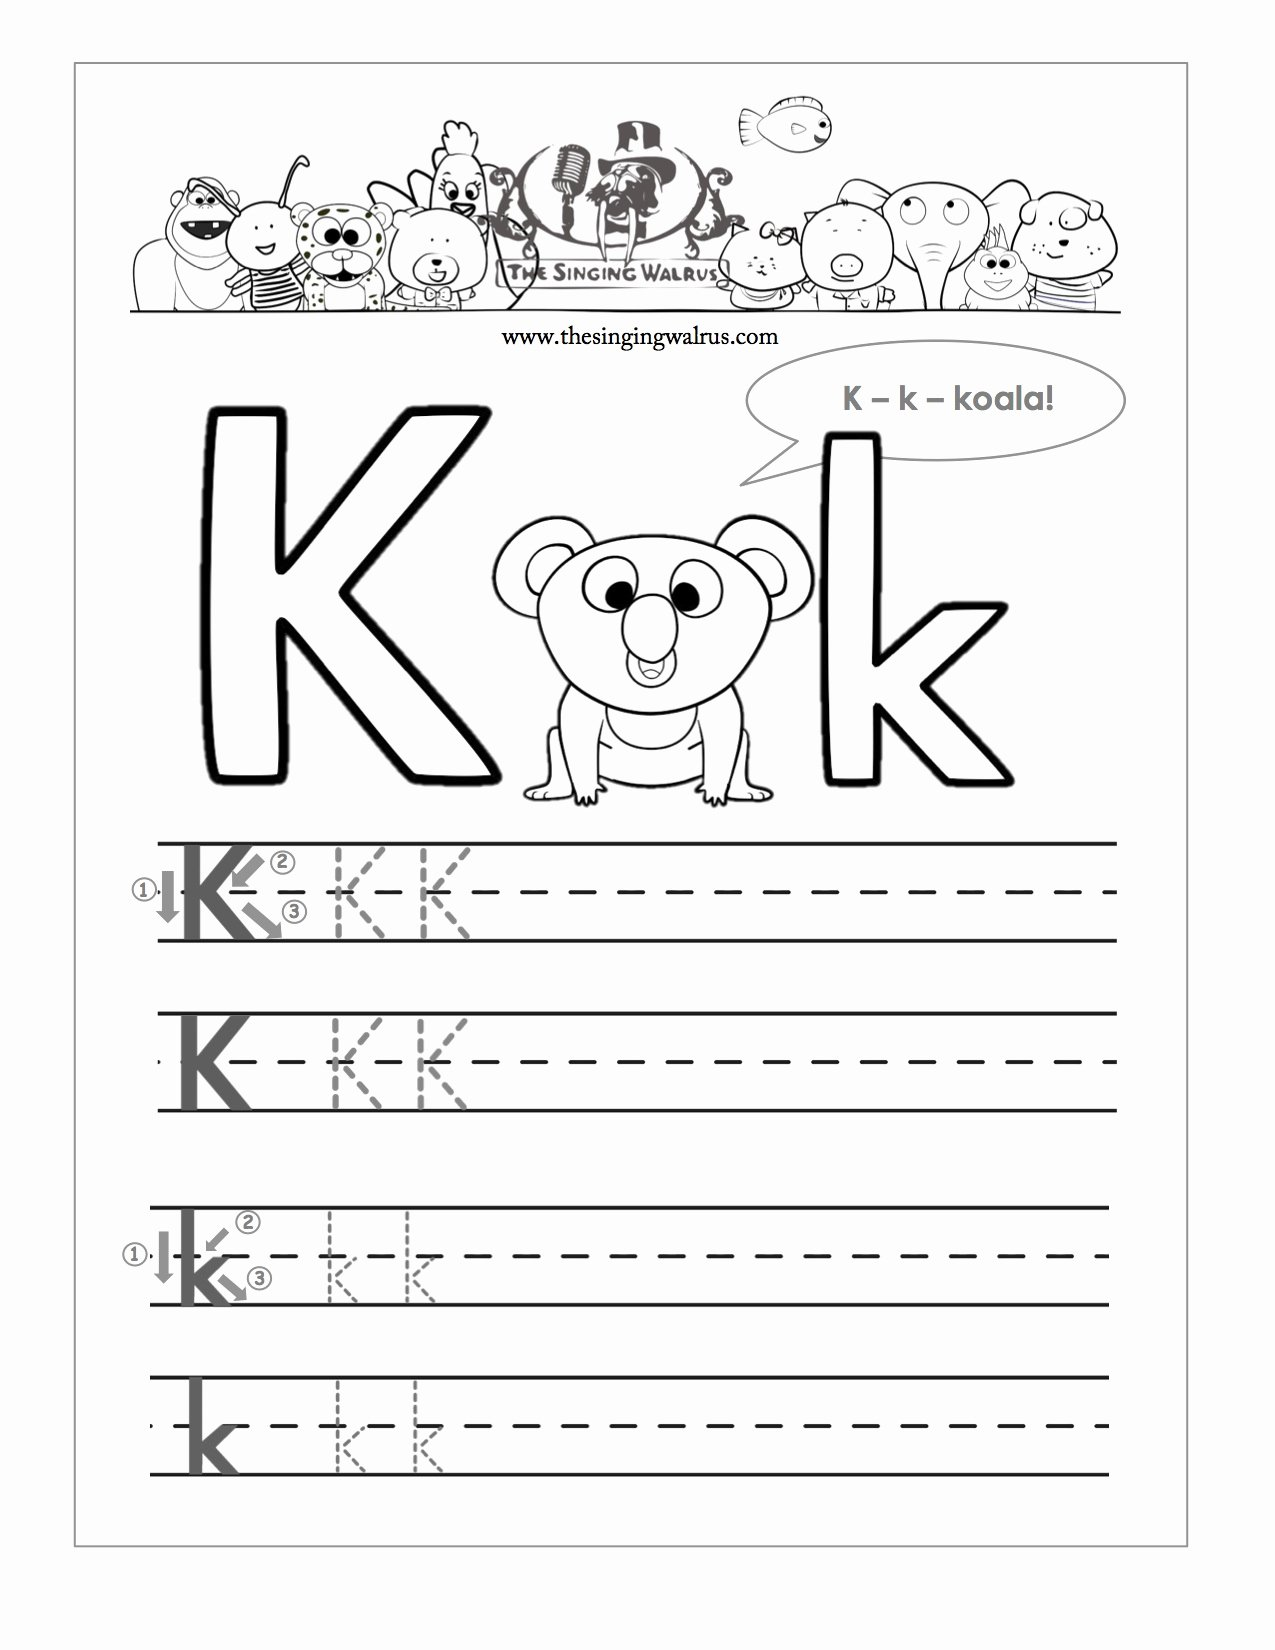 Worksheets for Preschoolers Learning to Write Lovely Worksheet Letter K Preschoolets for Kindergarten Learning